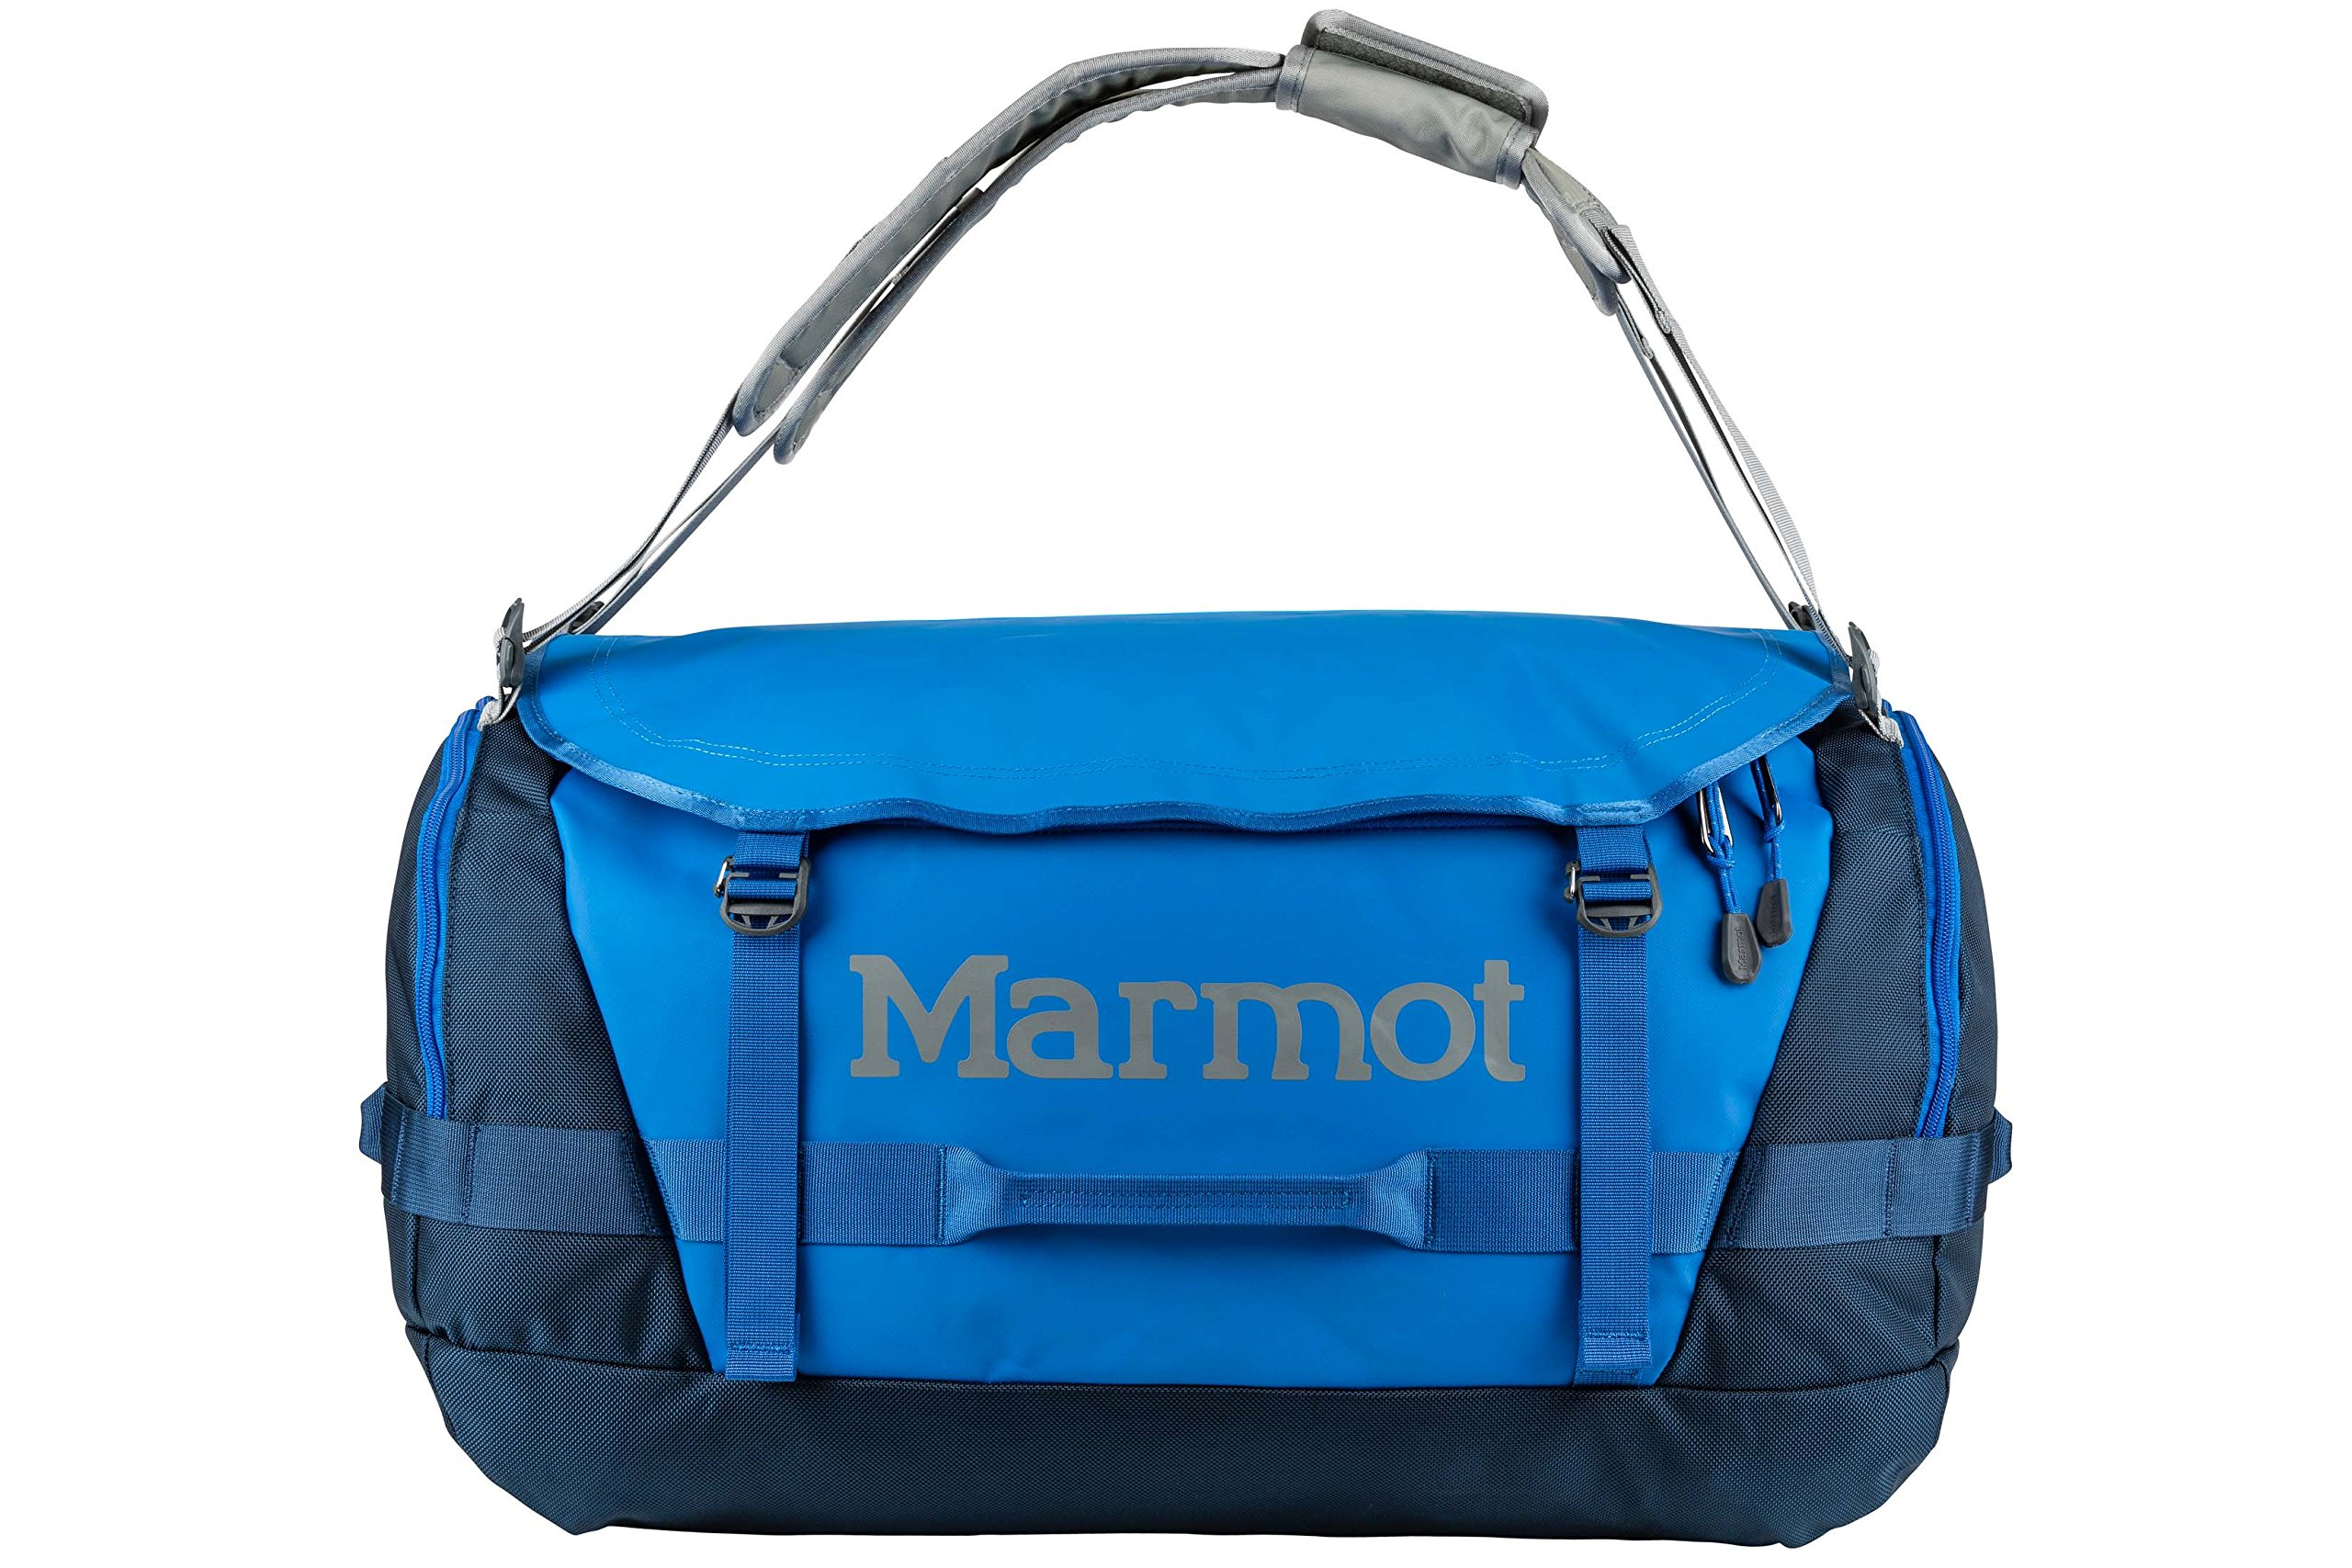 Marmot Long Hauler Large Travel Duffel Bag, 4575ci (75 liter) by Marmot